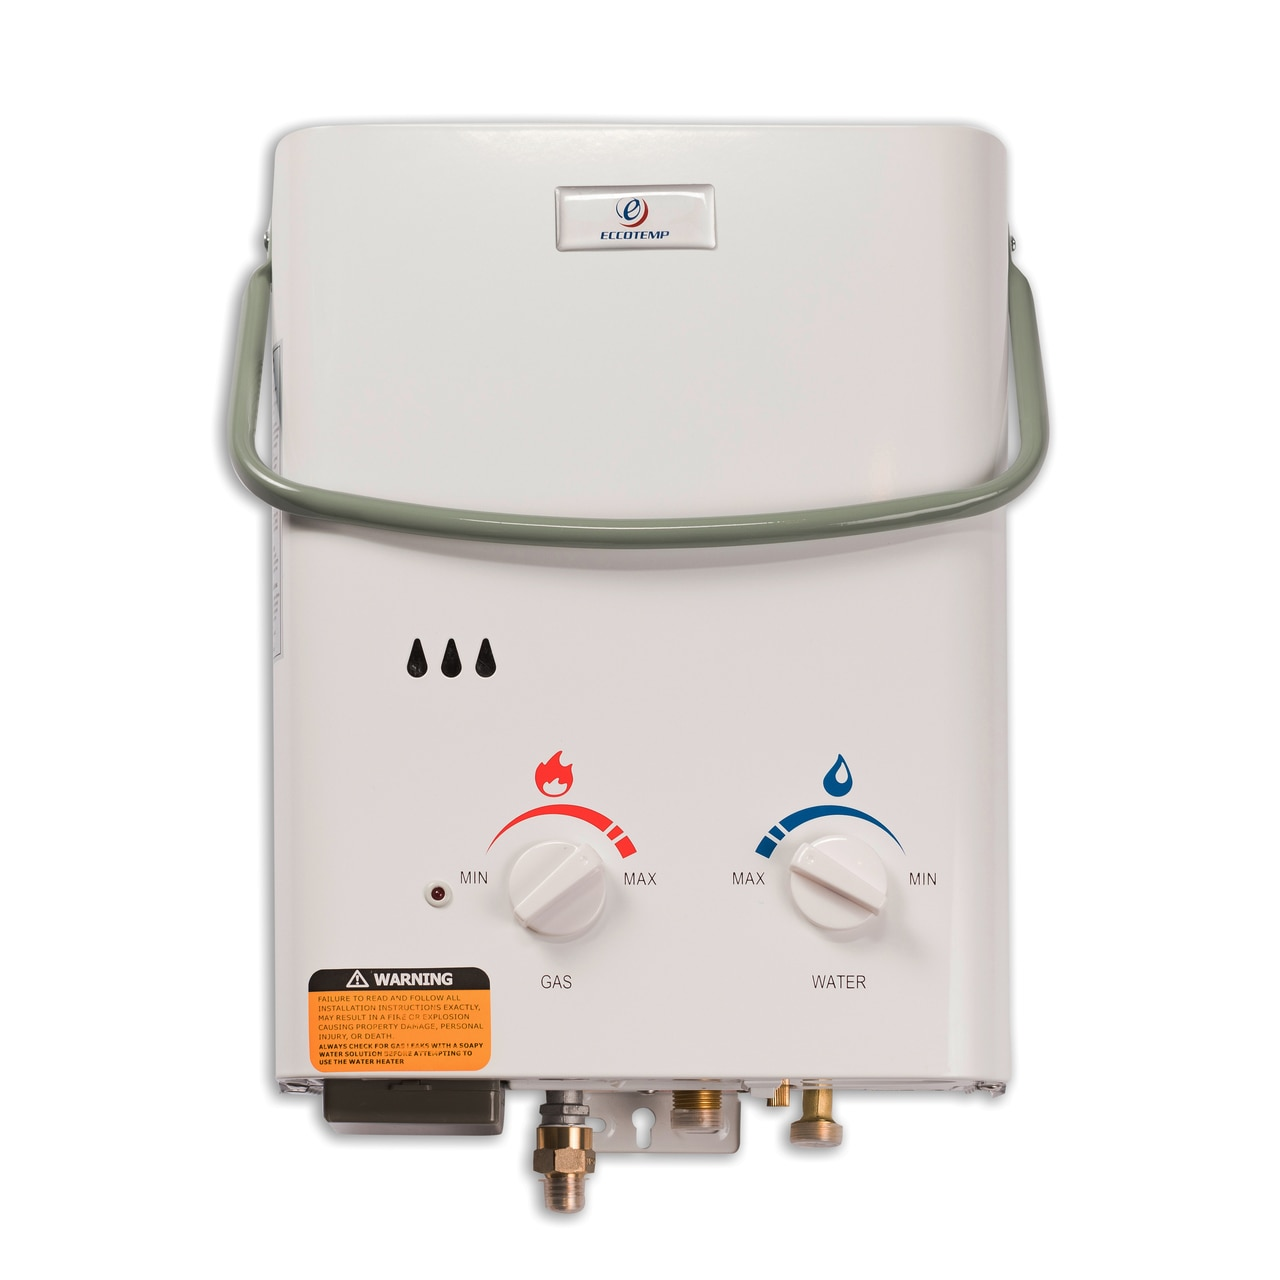 Tankless Water Heater Reviews-Eccotemp L5 Portable Tankless Water Heater